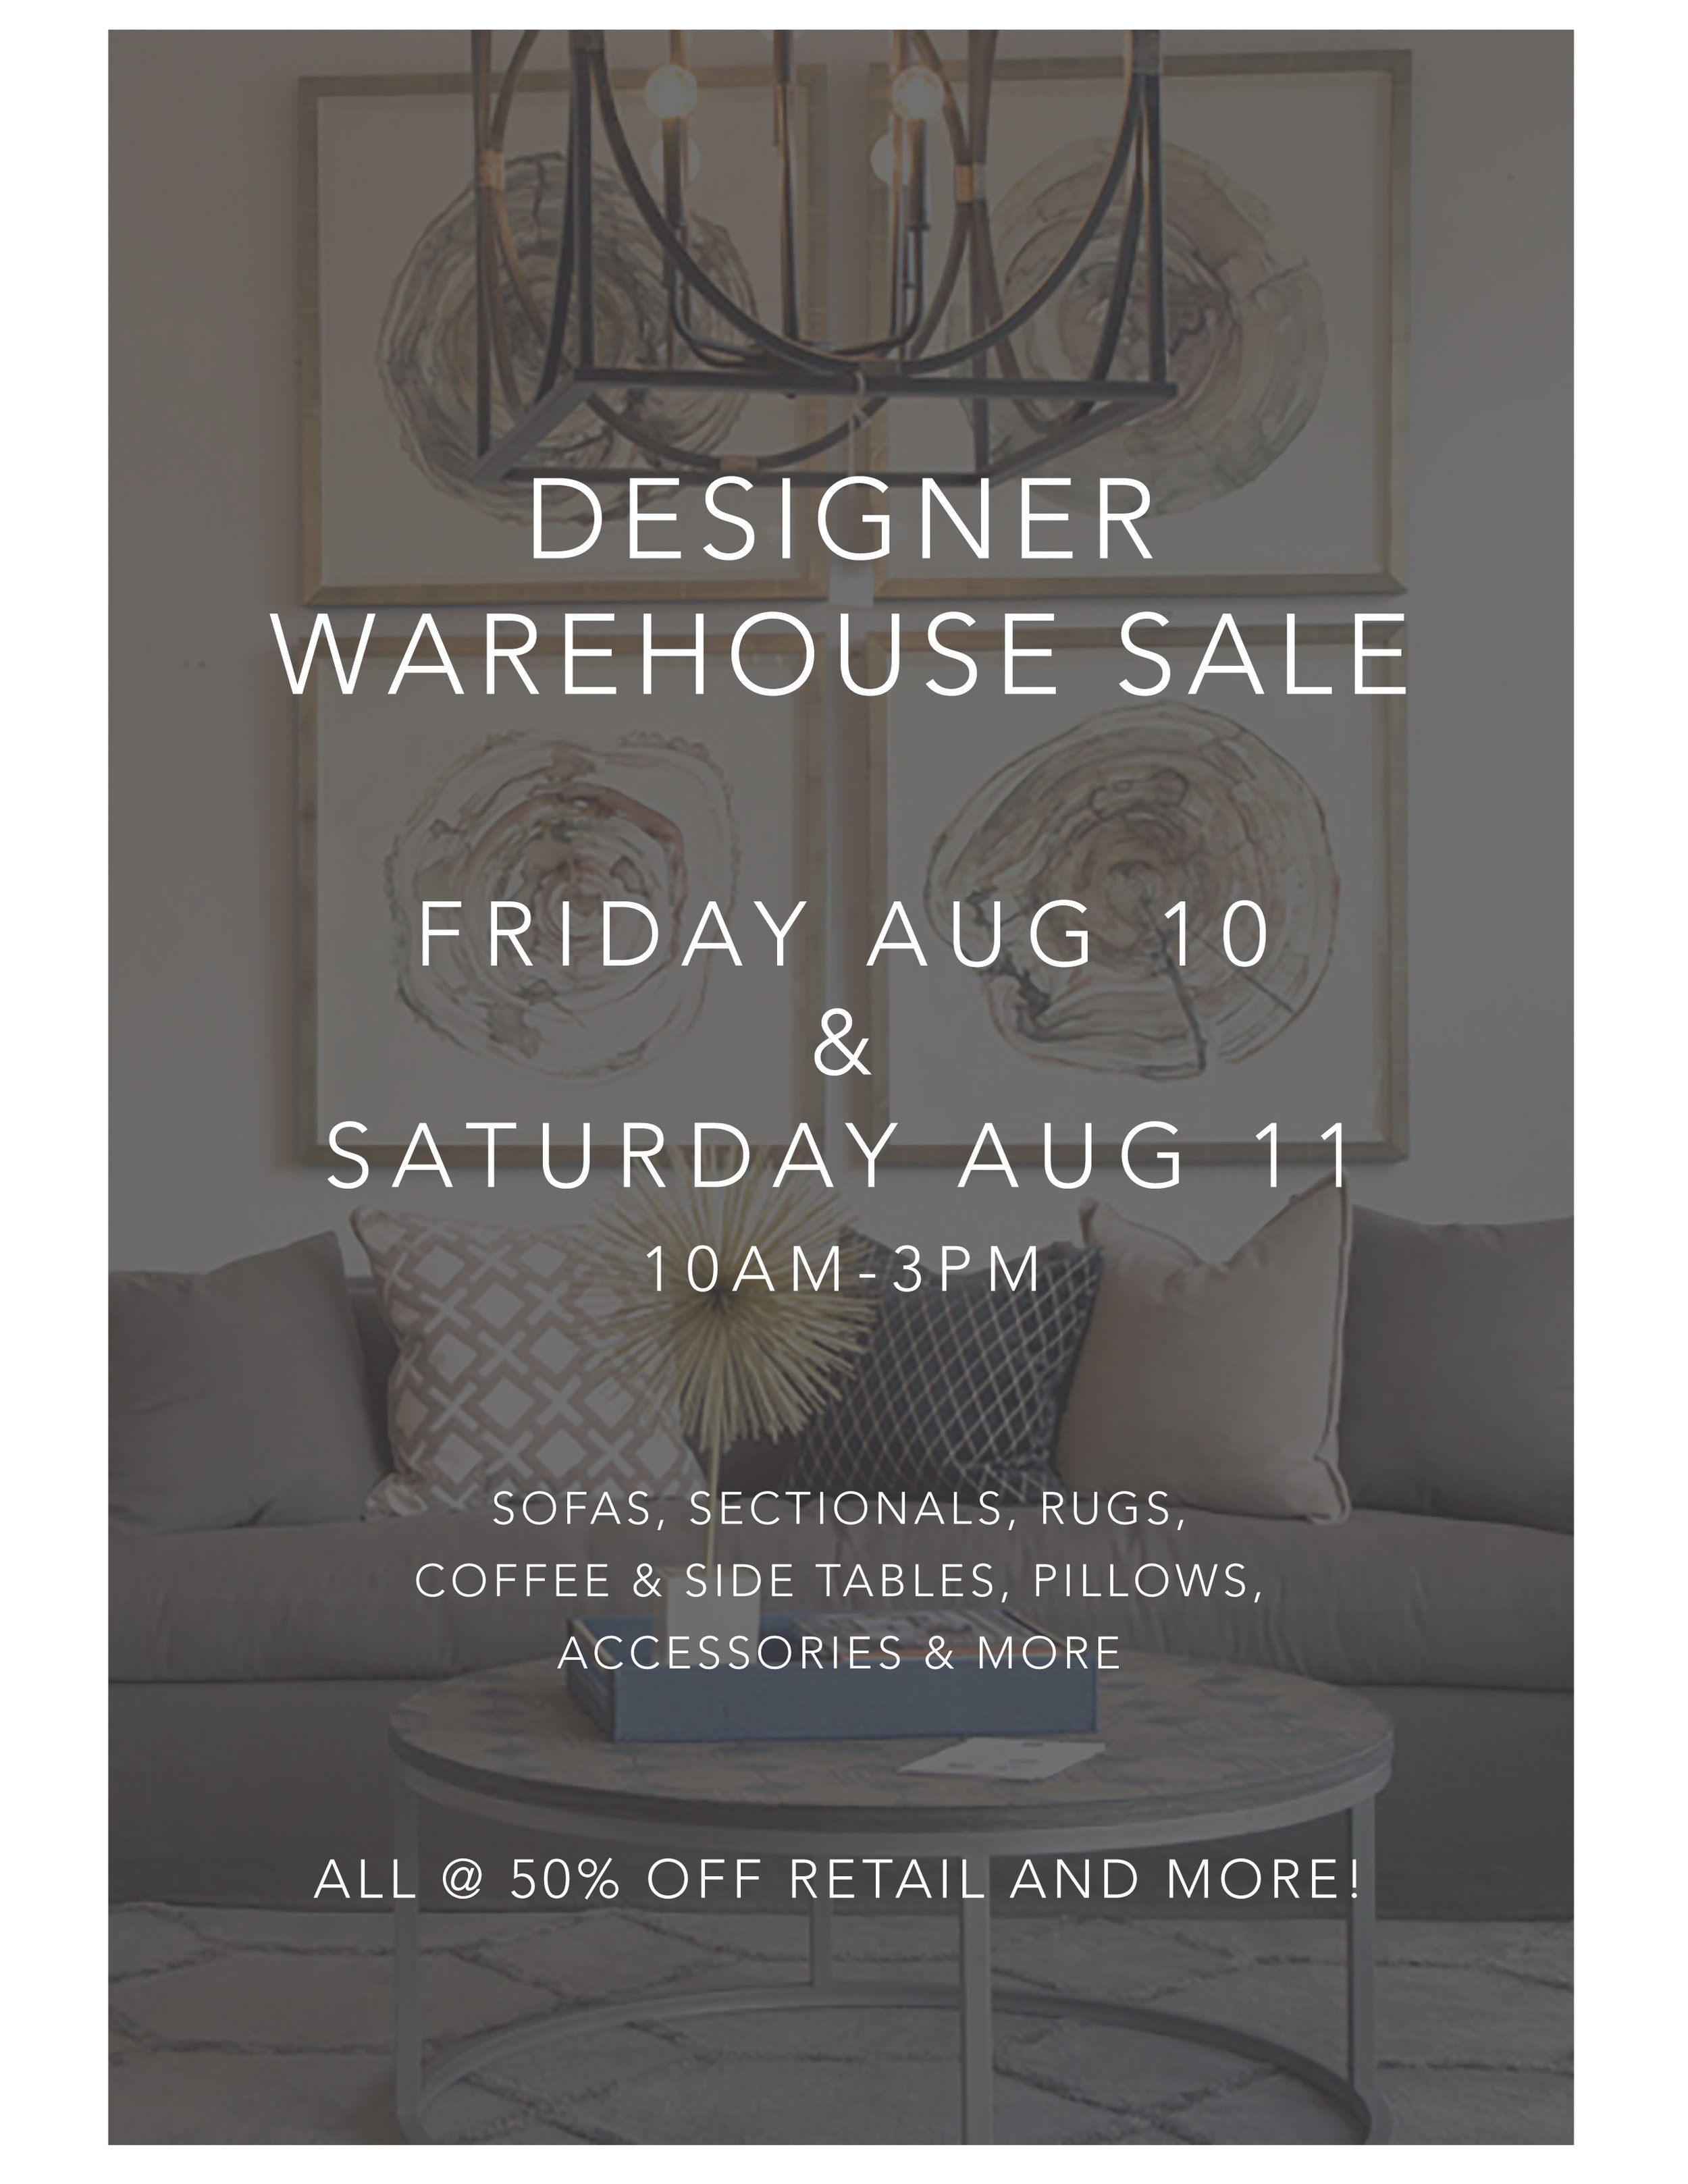 Designer Warehouse Sale.jpg